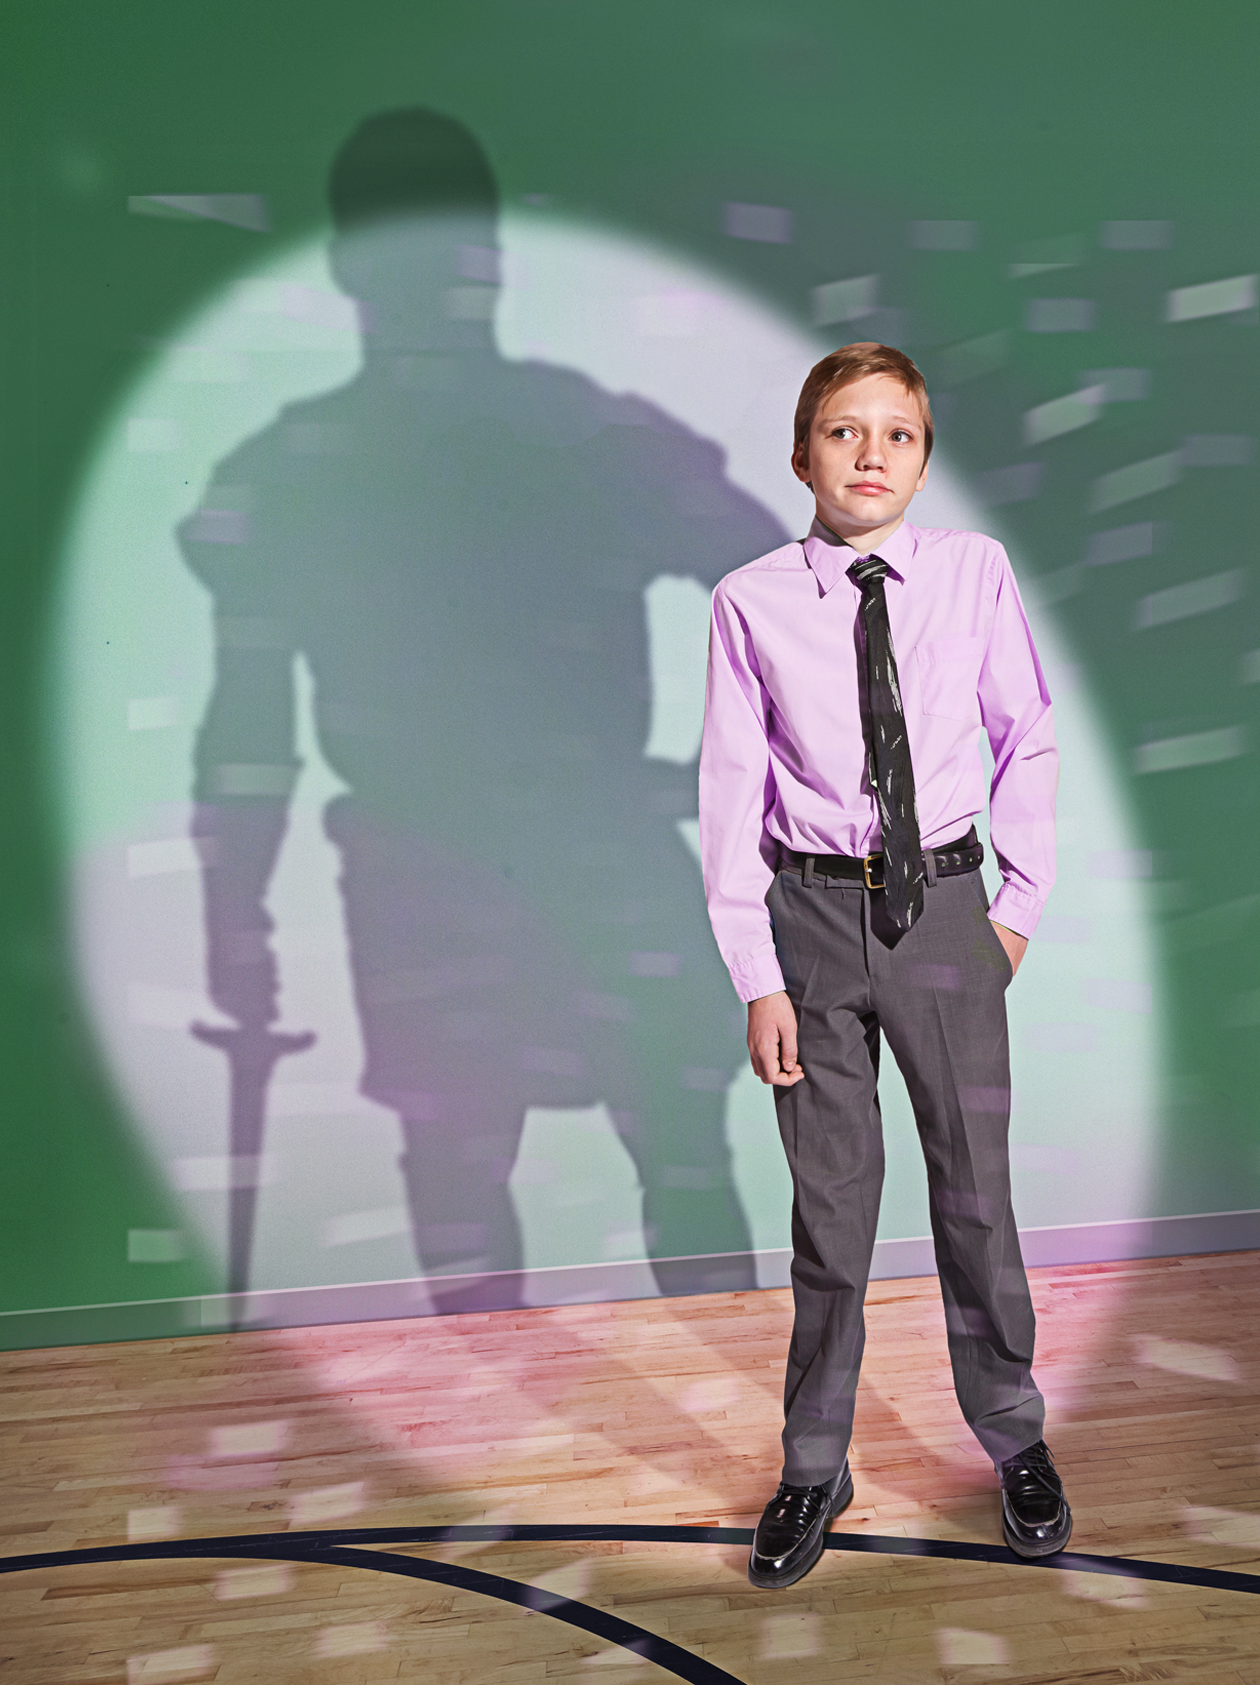 young man with Captain Moroni shadow